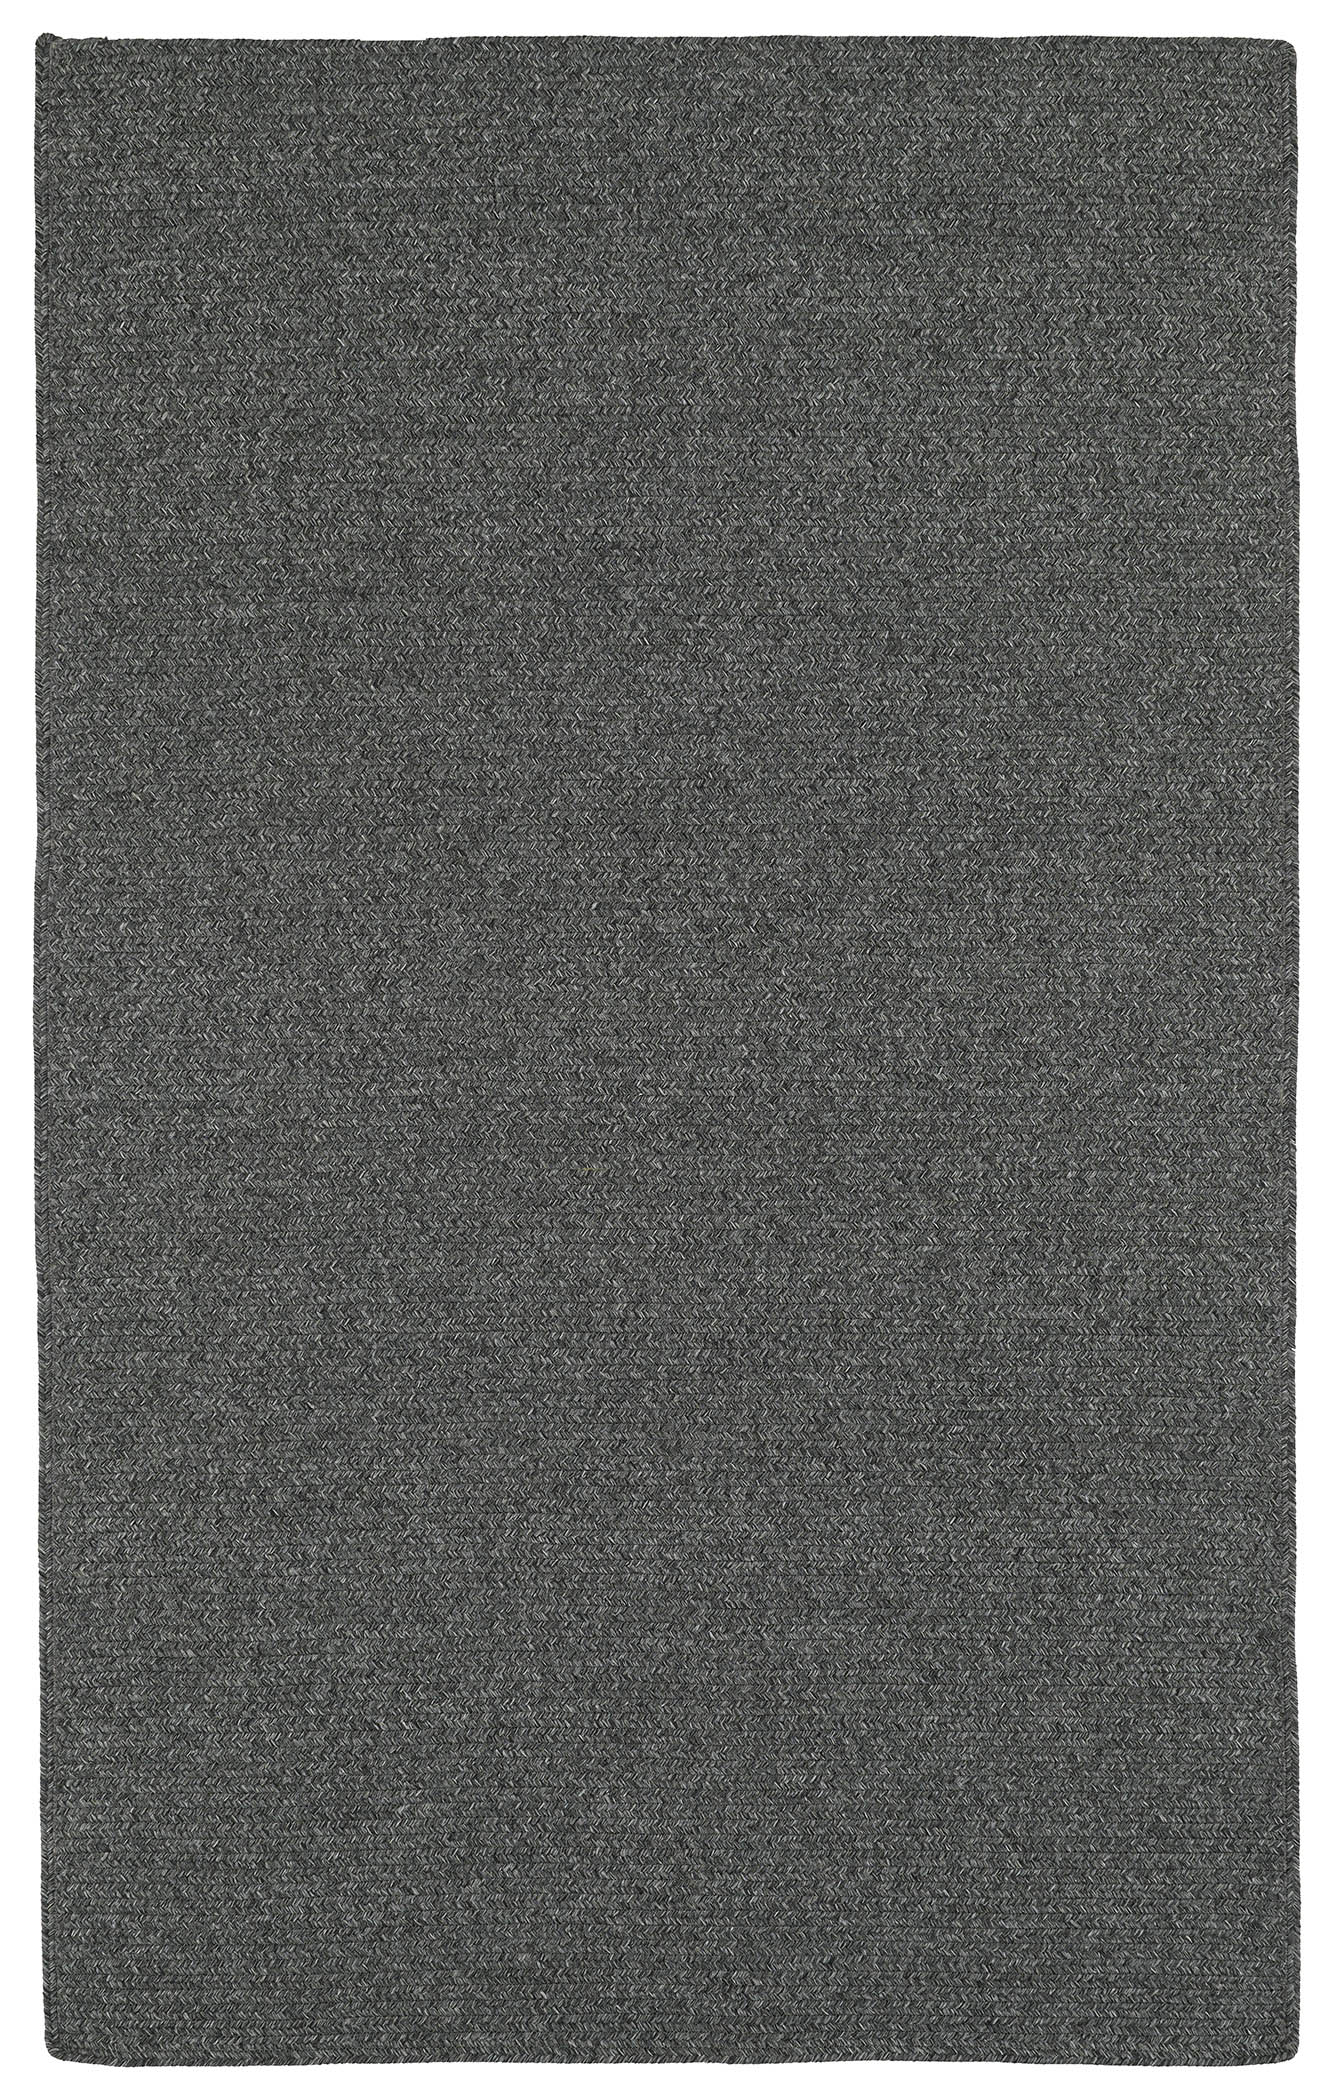 Bikini 3020 Charcoal 38 Outdoor Rug by Kaleen